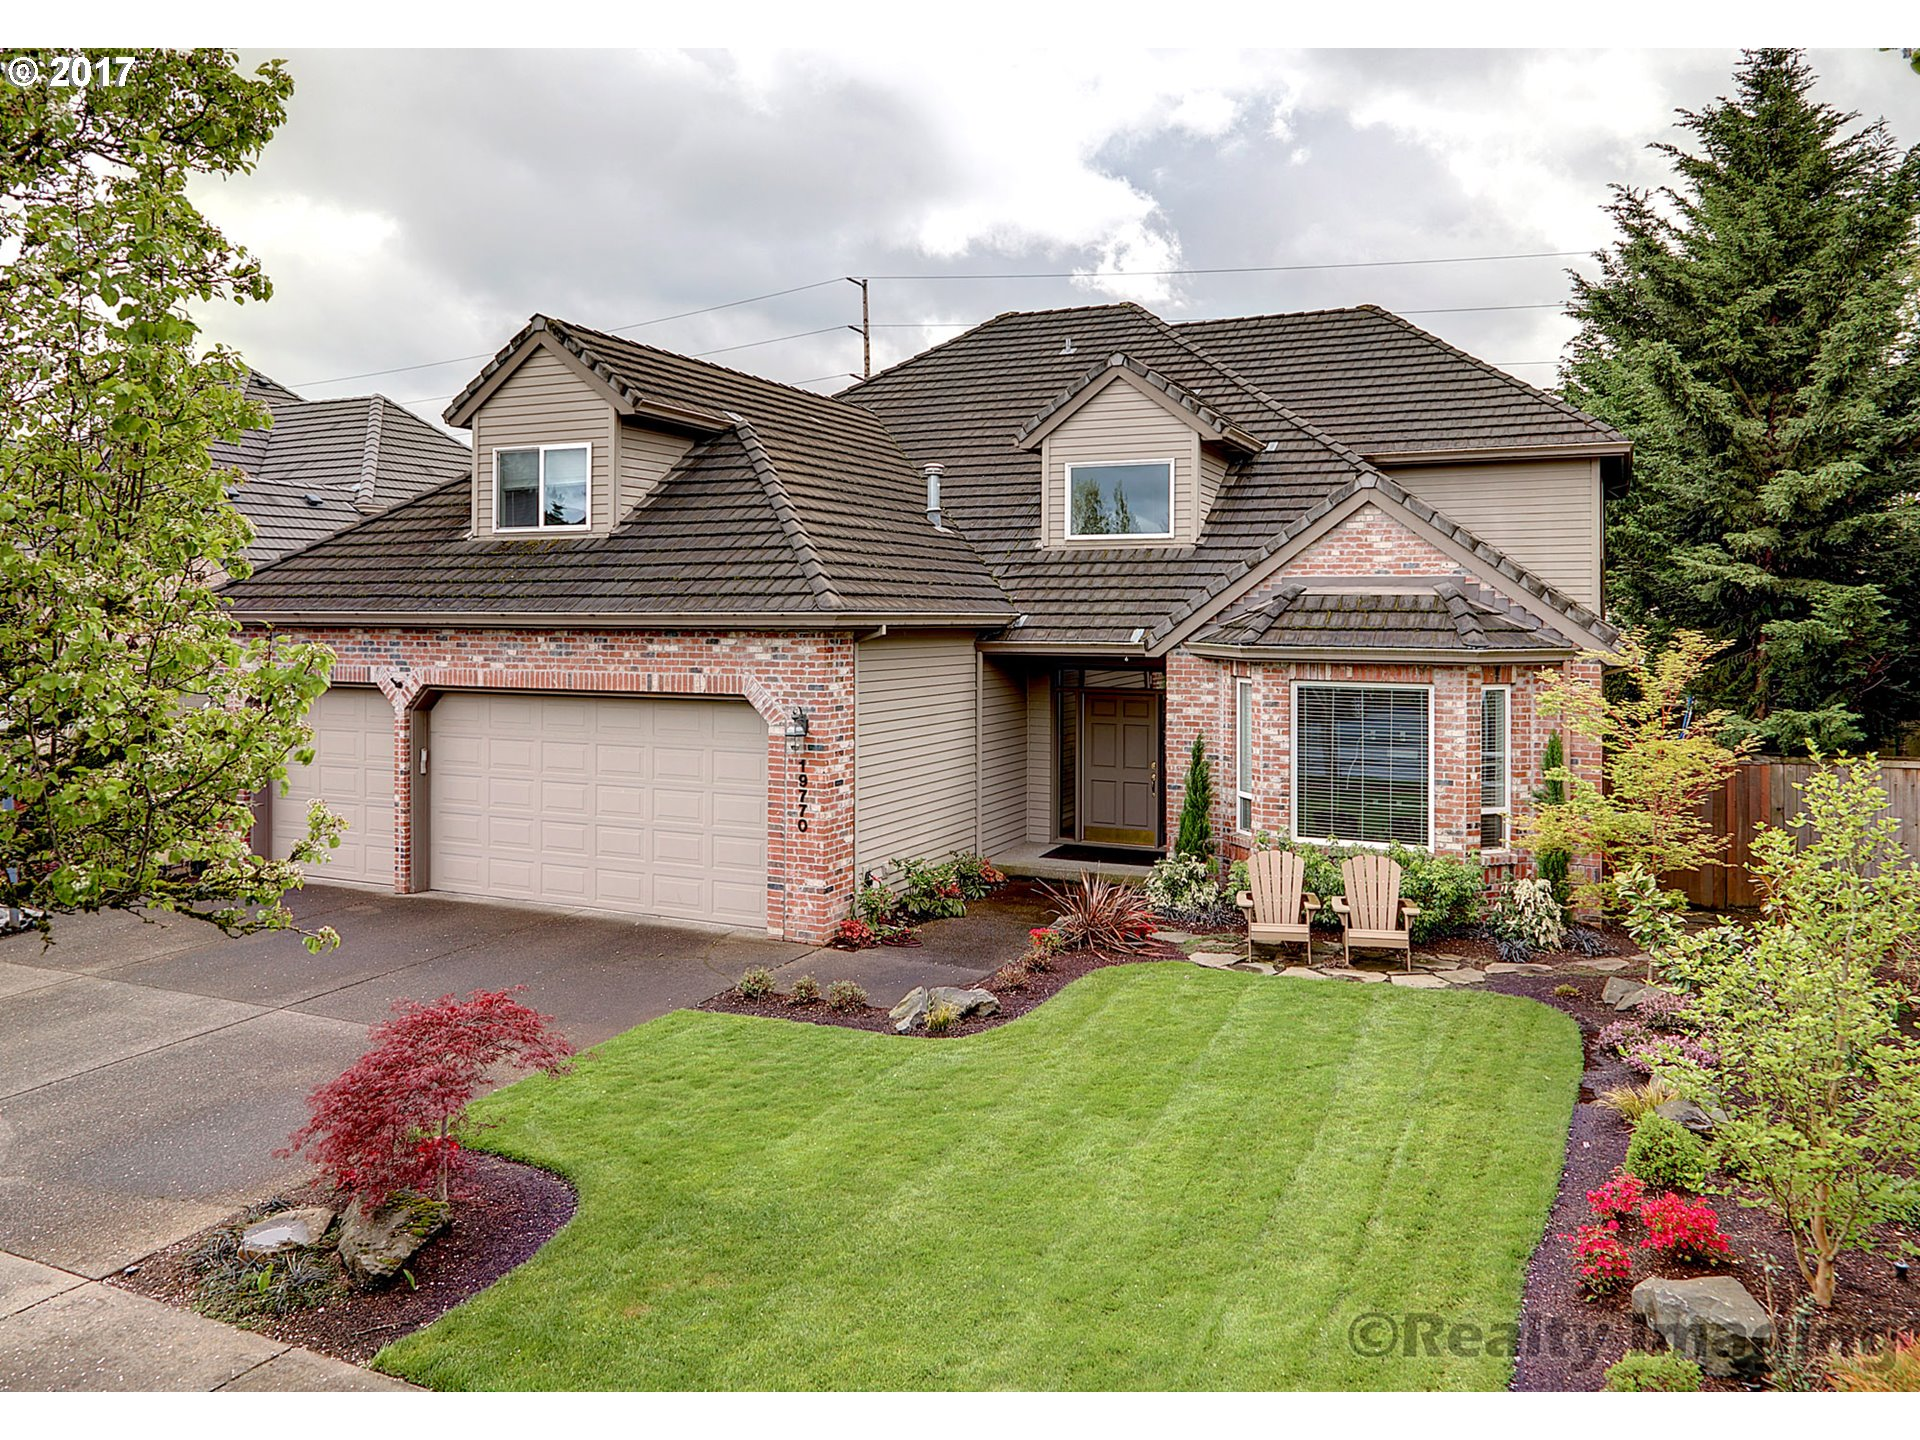 19770 SW 56TH CT, Tualatin OR 97062